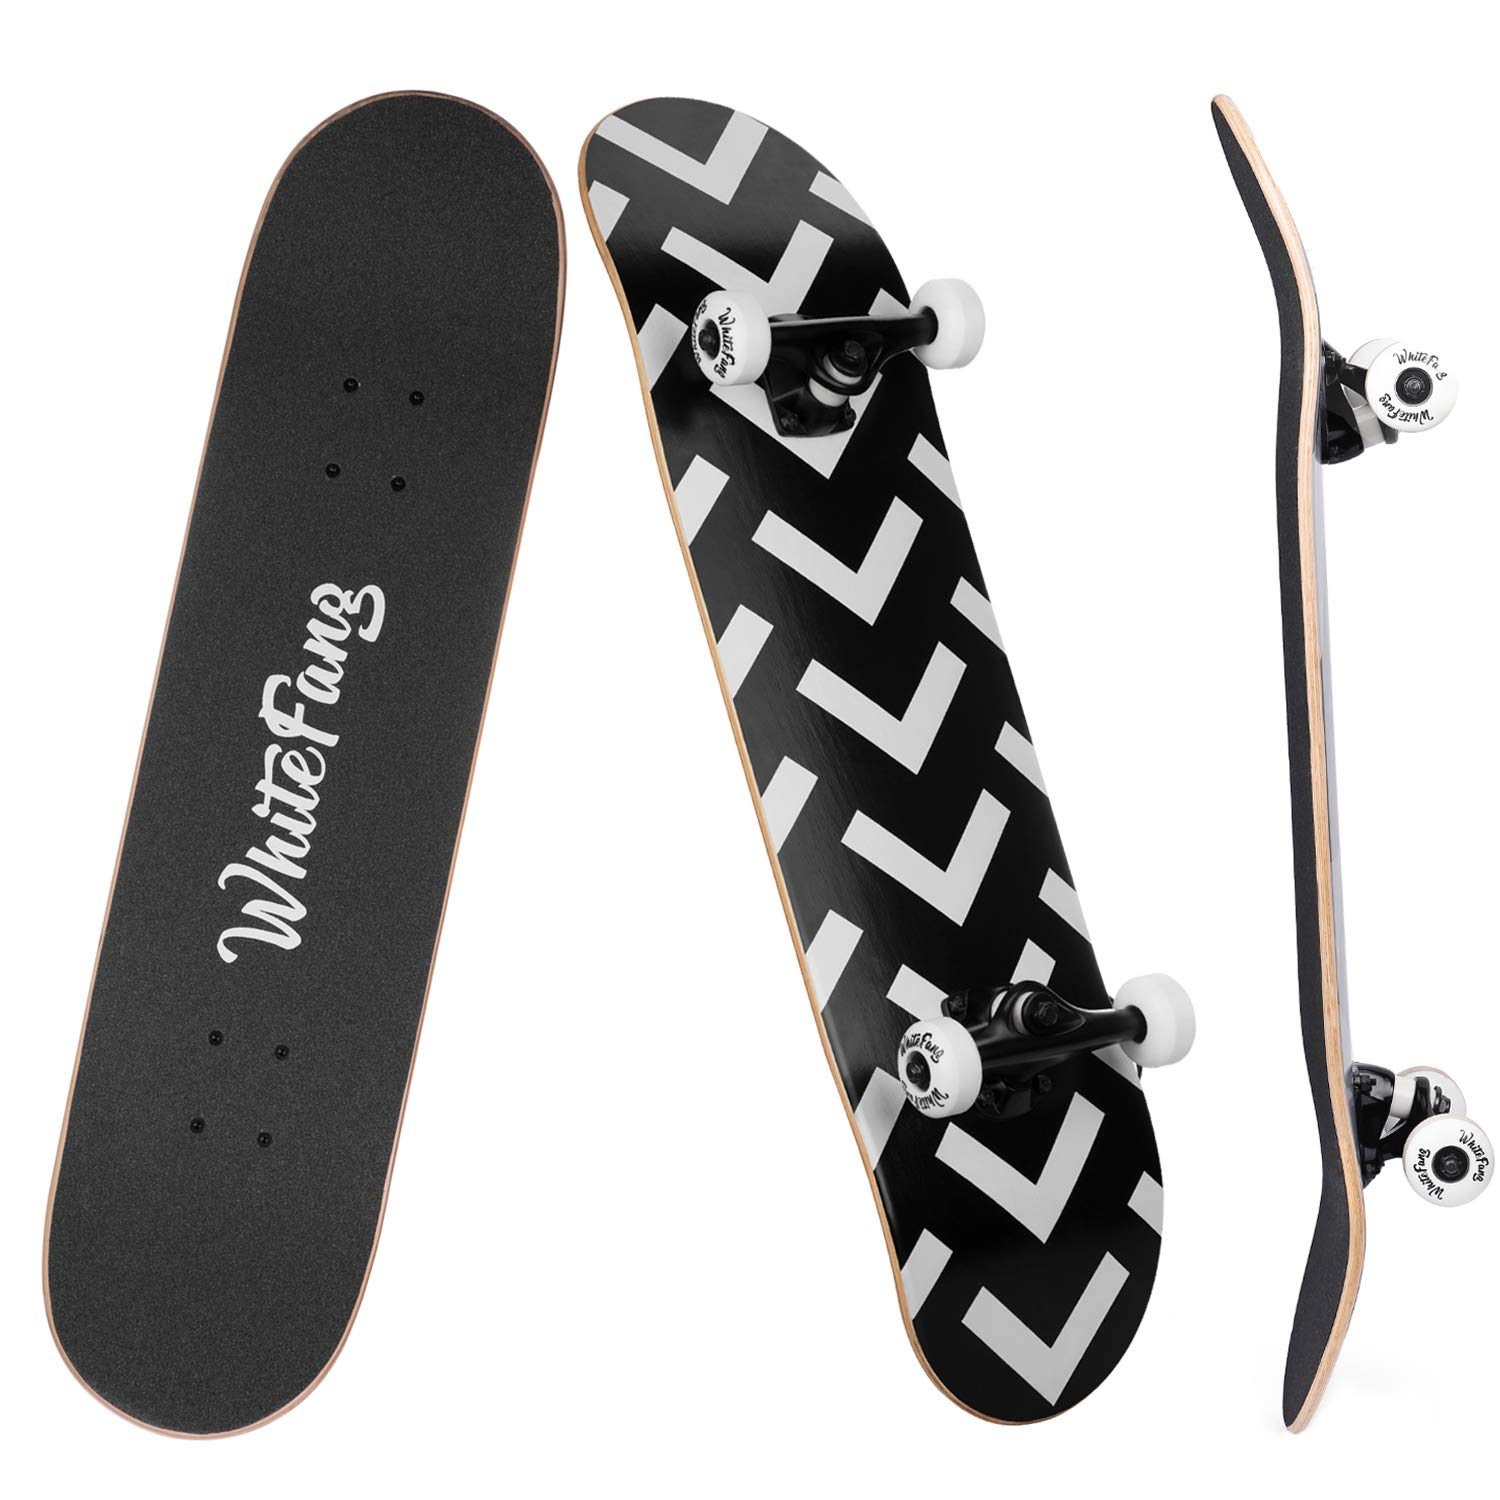 WhiteFang Skateboards for Beginners, Complete Skateboard 31 x 7.88, 7 Layer Canadian Maple Double Kick Concave Standard and Tricks Skateboards for Kids and Beginners